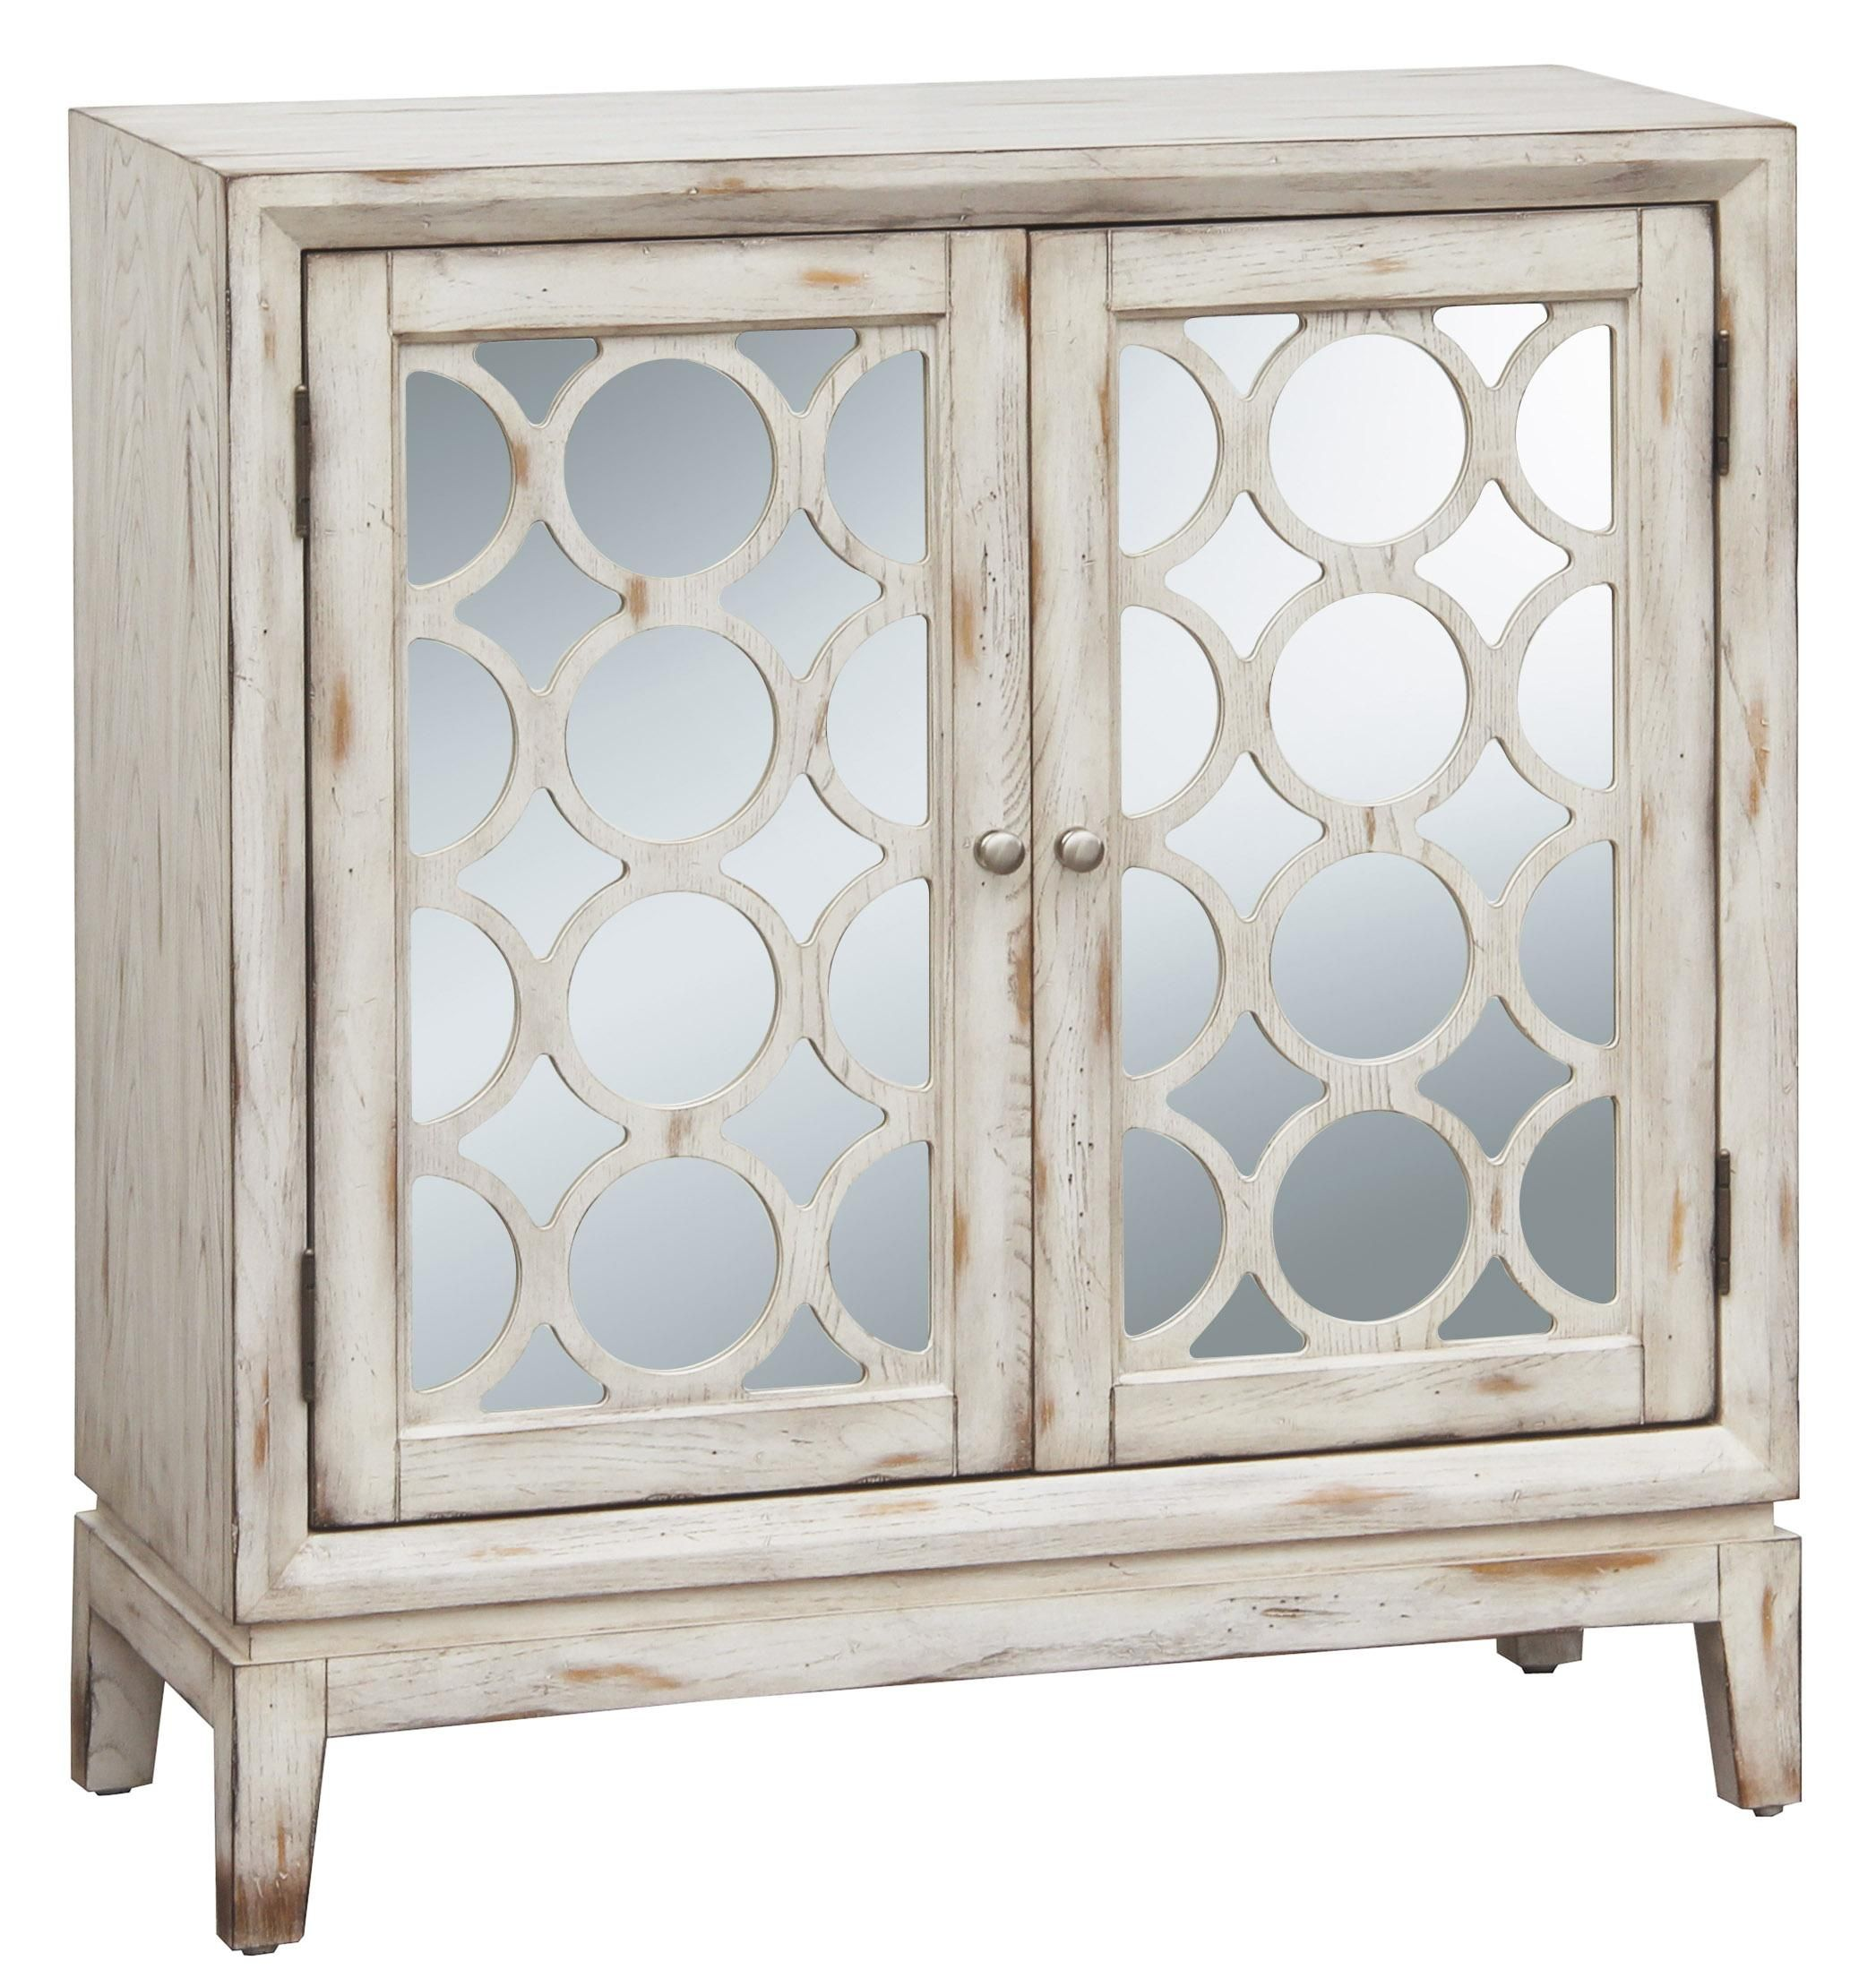 Accents Quinn Hall Chest With Wood Grilles By Pulaski Furniture At Hudson S Furniture Accent Chests And Cabinets Hall Chest Mirrored Furniture